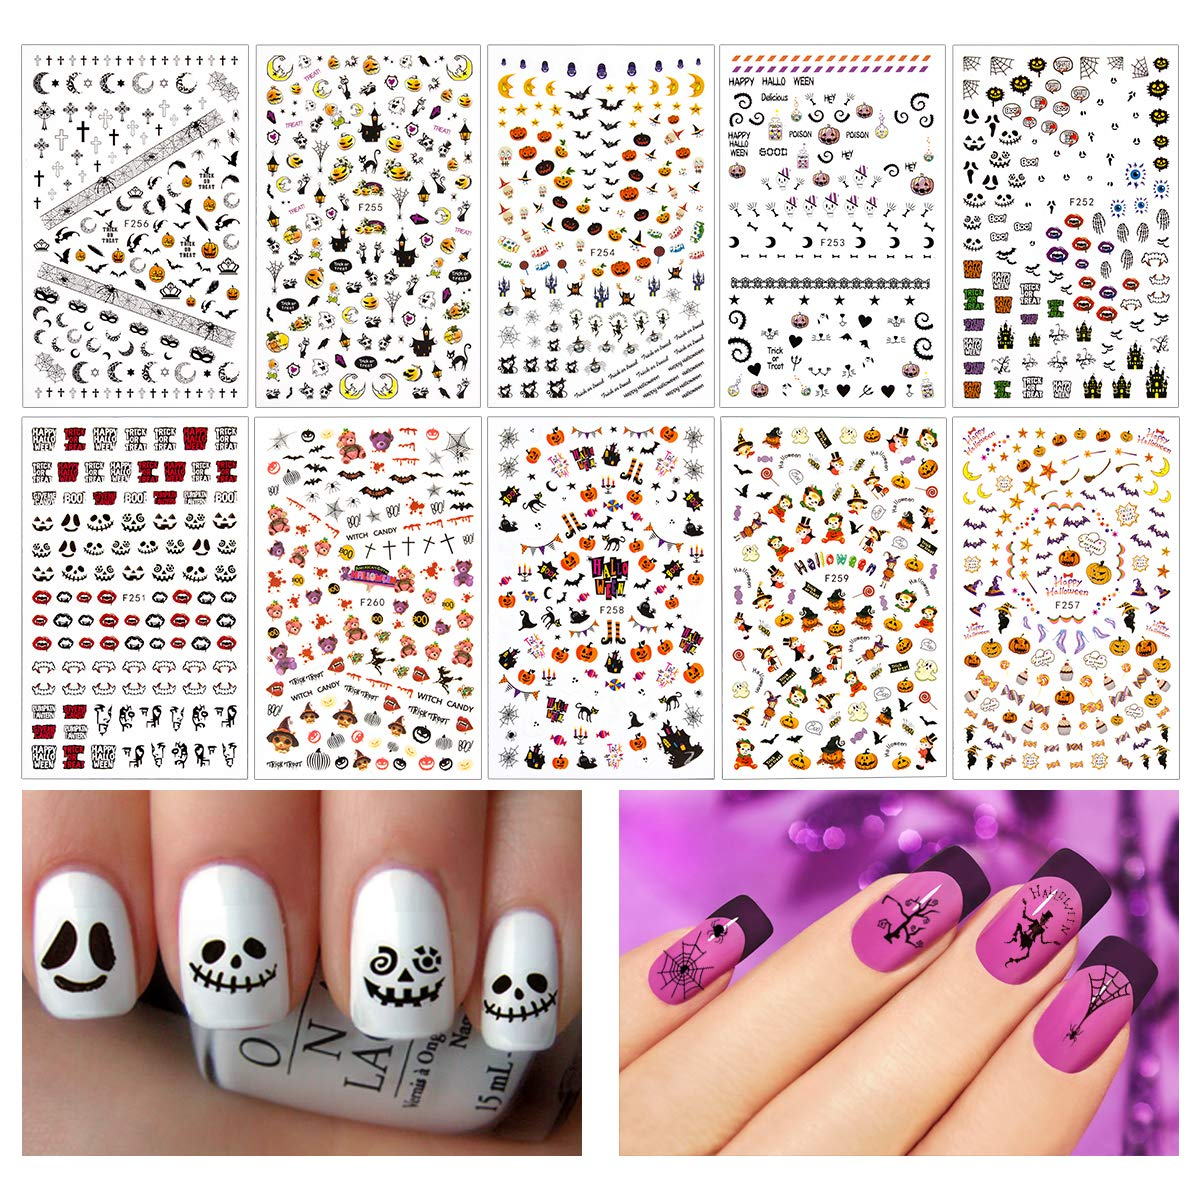 Madholly 1200+ Pieces 3D Design Self Adhesive Halloween Nail Art Stickers Decals Tattoo Manicure Decoration for Fingernails Toenails Nail Tips by MADHOLLY